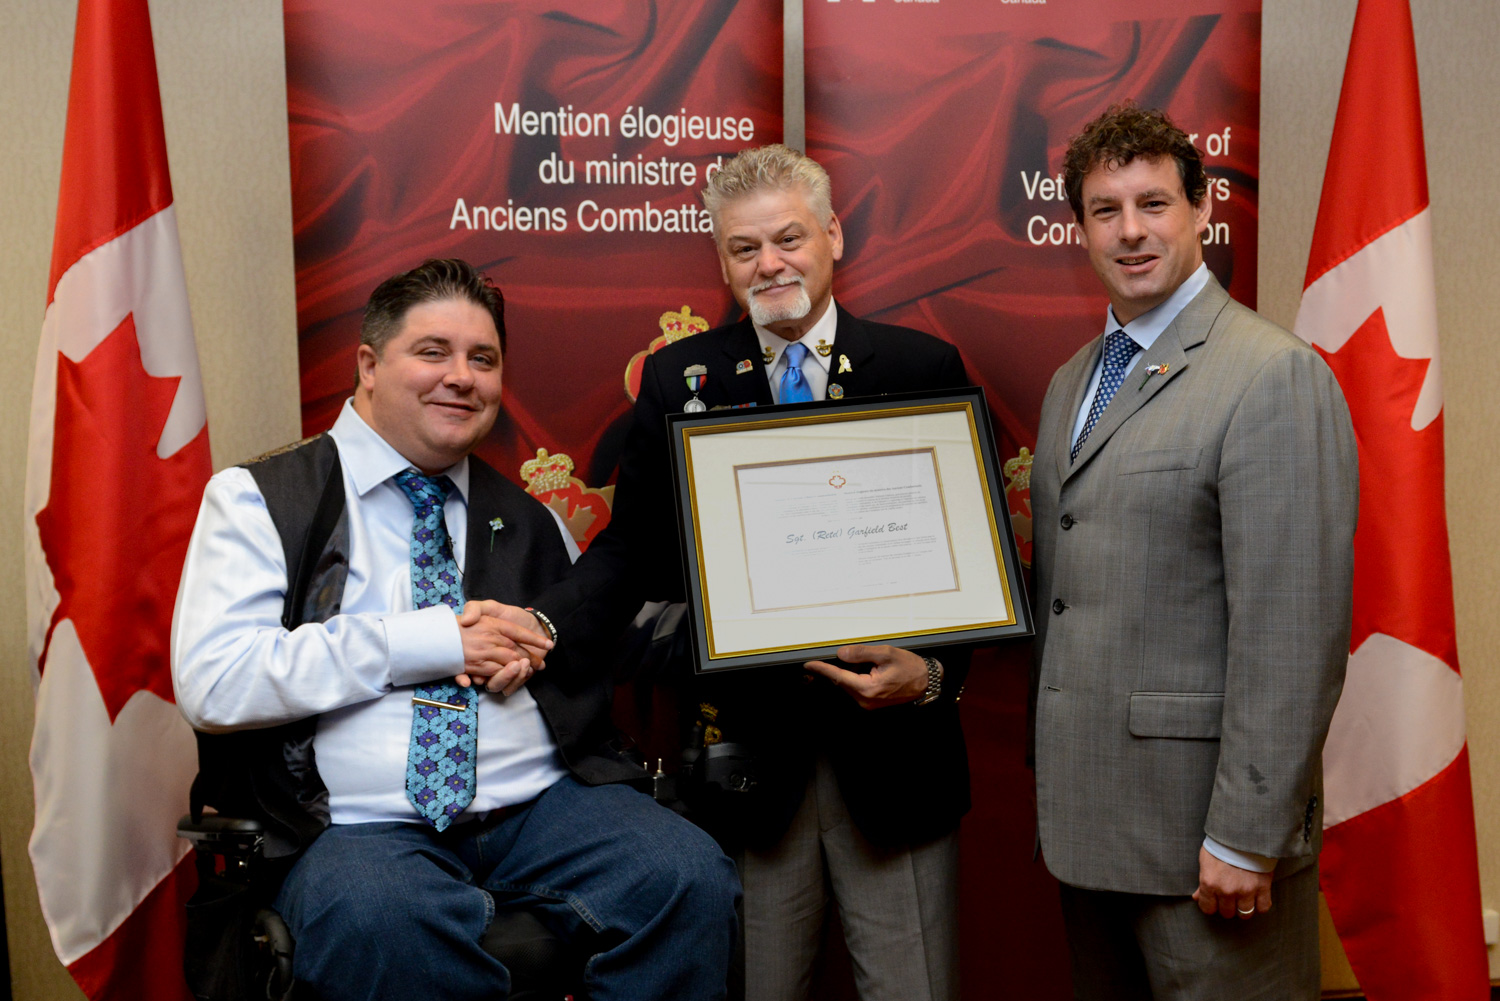 The honorable Kent Hehr, Minister for Veterans Affairs, Mr. Garfield Best, and Nick Whalen, Member of Parliament for St. John's East.